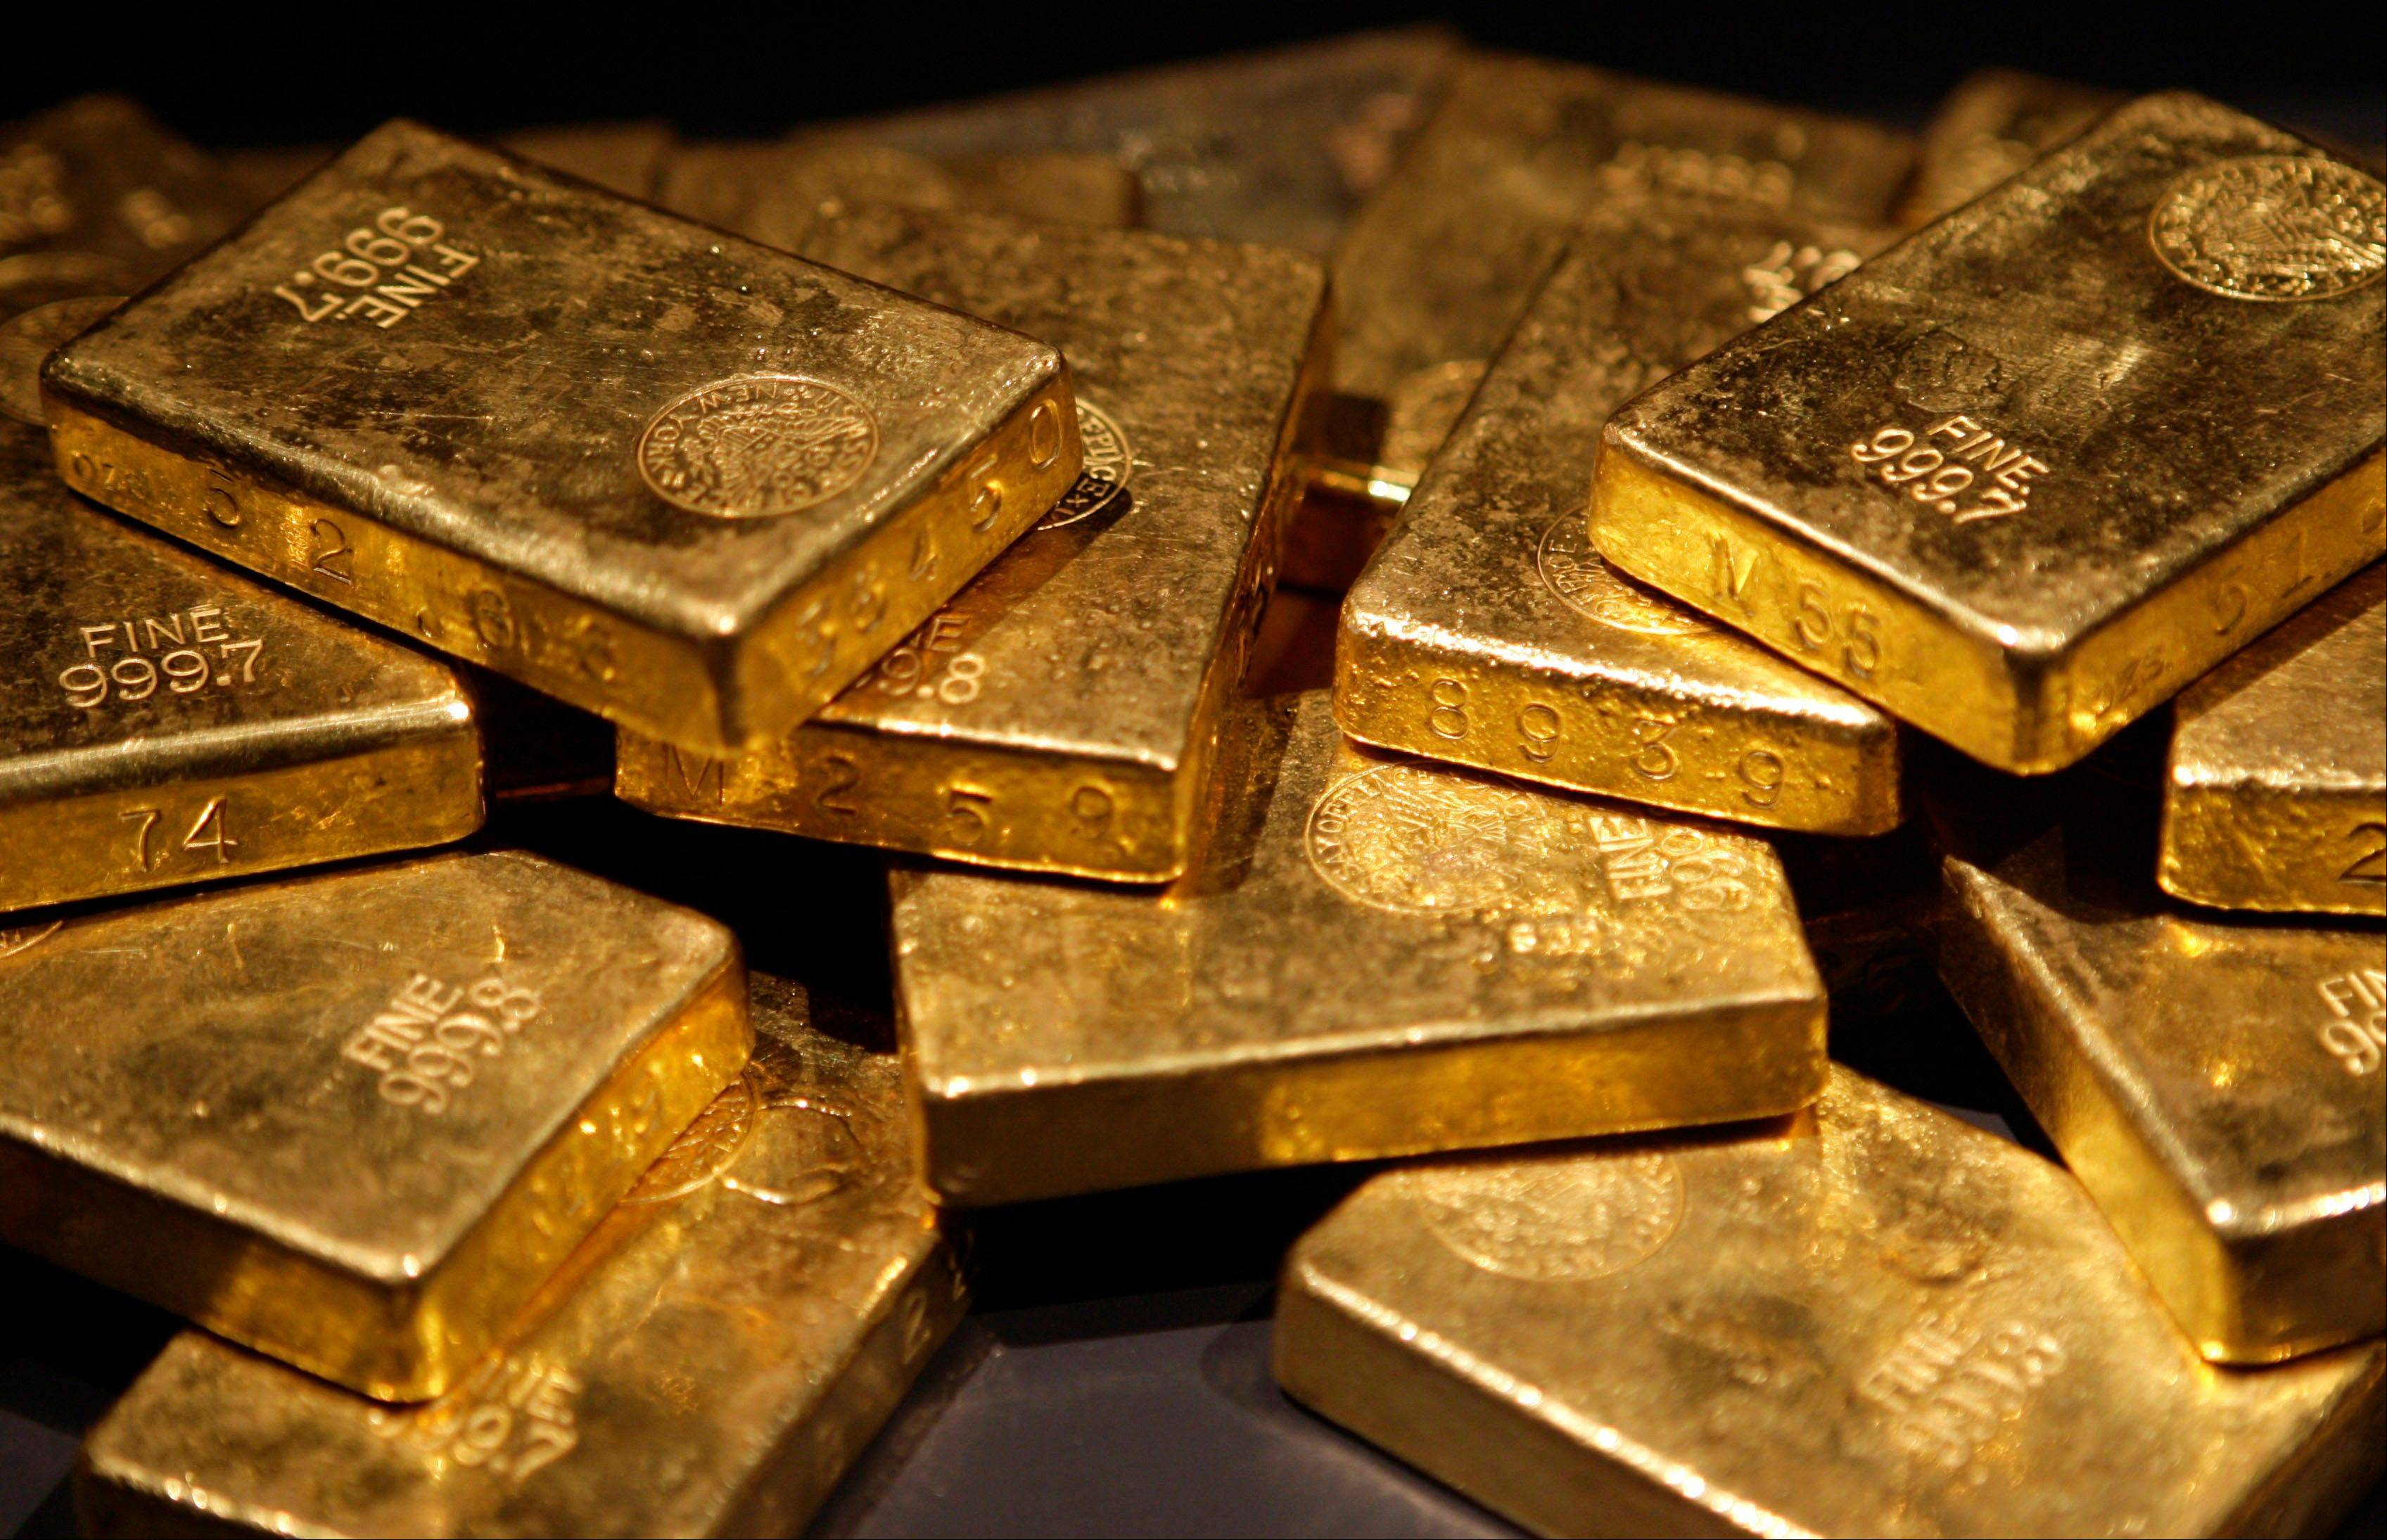 Gold bars are on display at the �Gold� exhibit in the American Museum of Natural History in New York. Gold, often touted as the most trustworthy of investments, has looked wild over the past month.